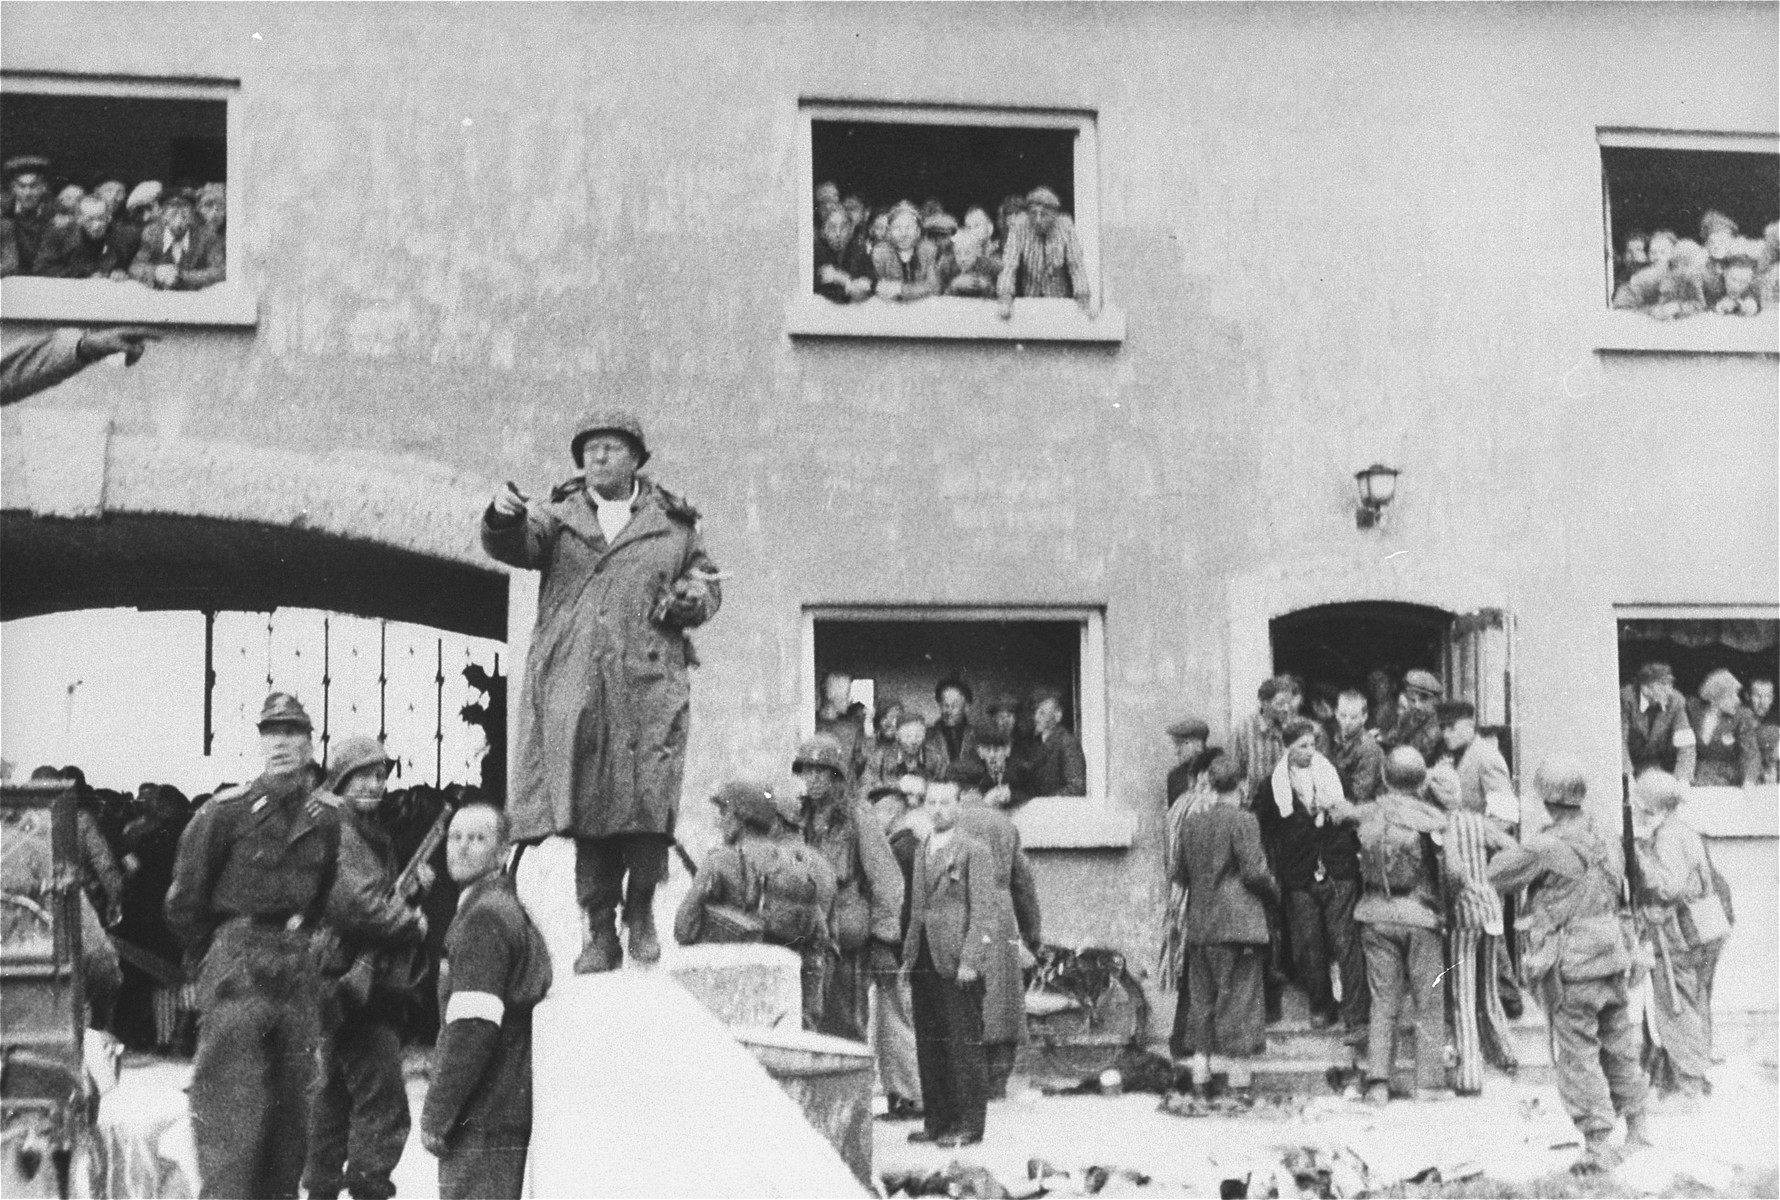 General Henning Linden, assistant commanding general, 42nd Rainbow Infantry Division, gives directions to his troops from the parapet of the bridge at the Jourhaus at the entrance to the Dachau concentration camp.  The civilian with the white armband is Dr. Victor Maurer of the ICRC (International Red Cross).  The German officer to the left is SS Lt. Wickert, the German officer who surrendered the camp. [oversize print]